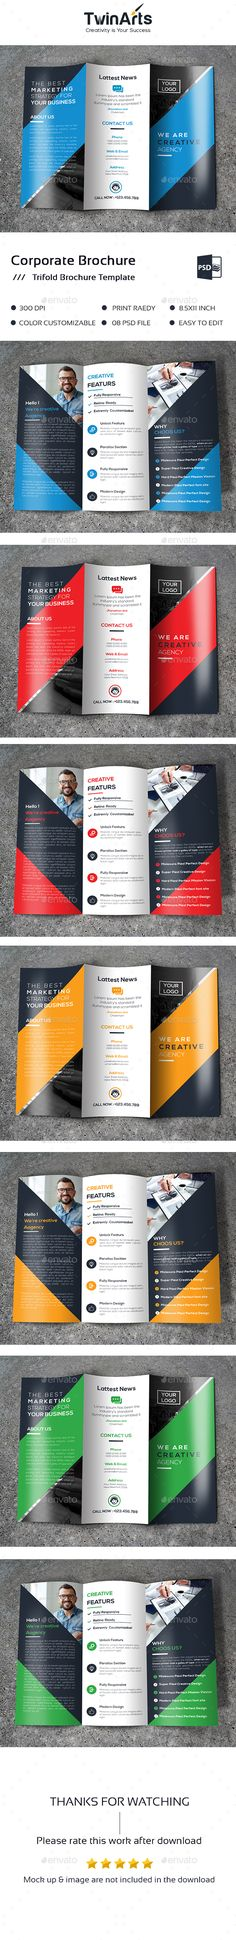 Trifold Brochure Design Template - Brochures Print Design Template PSD. Download here: https://graphicriver.net/item/trifold-brochure/19385249?ref=yinkira